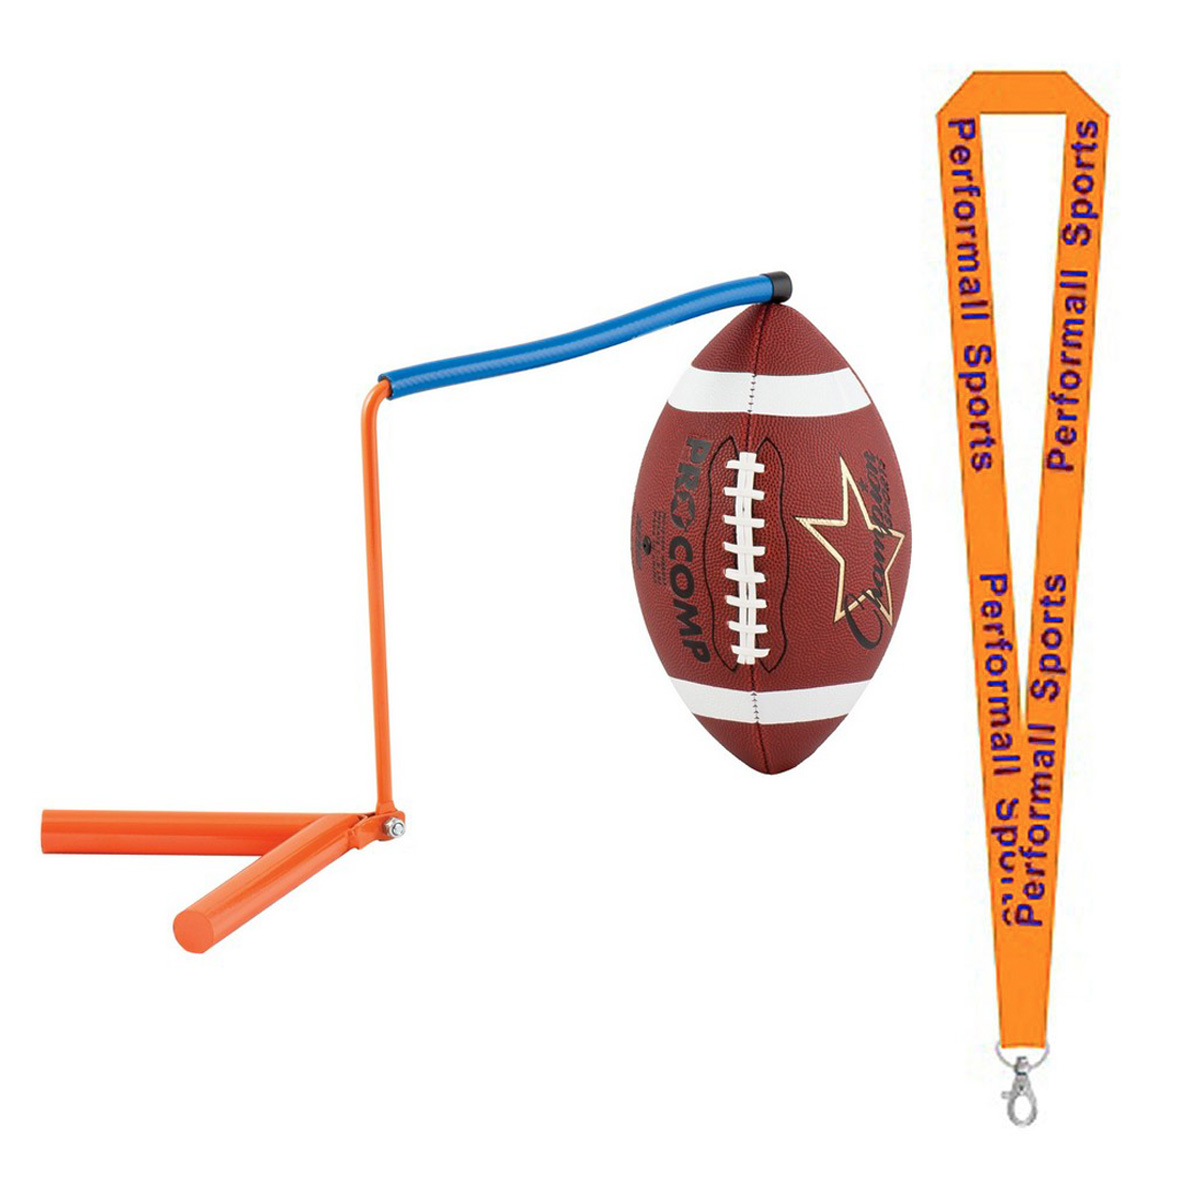 Champion Sports Bundle: Football Kicking Holder Royal Blue with 1 Performall Lanyard FHK-1P